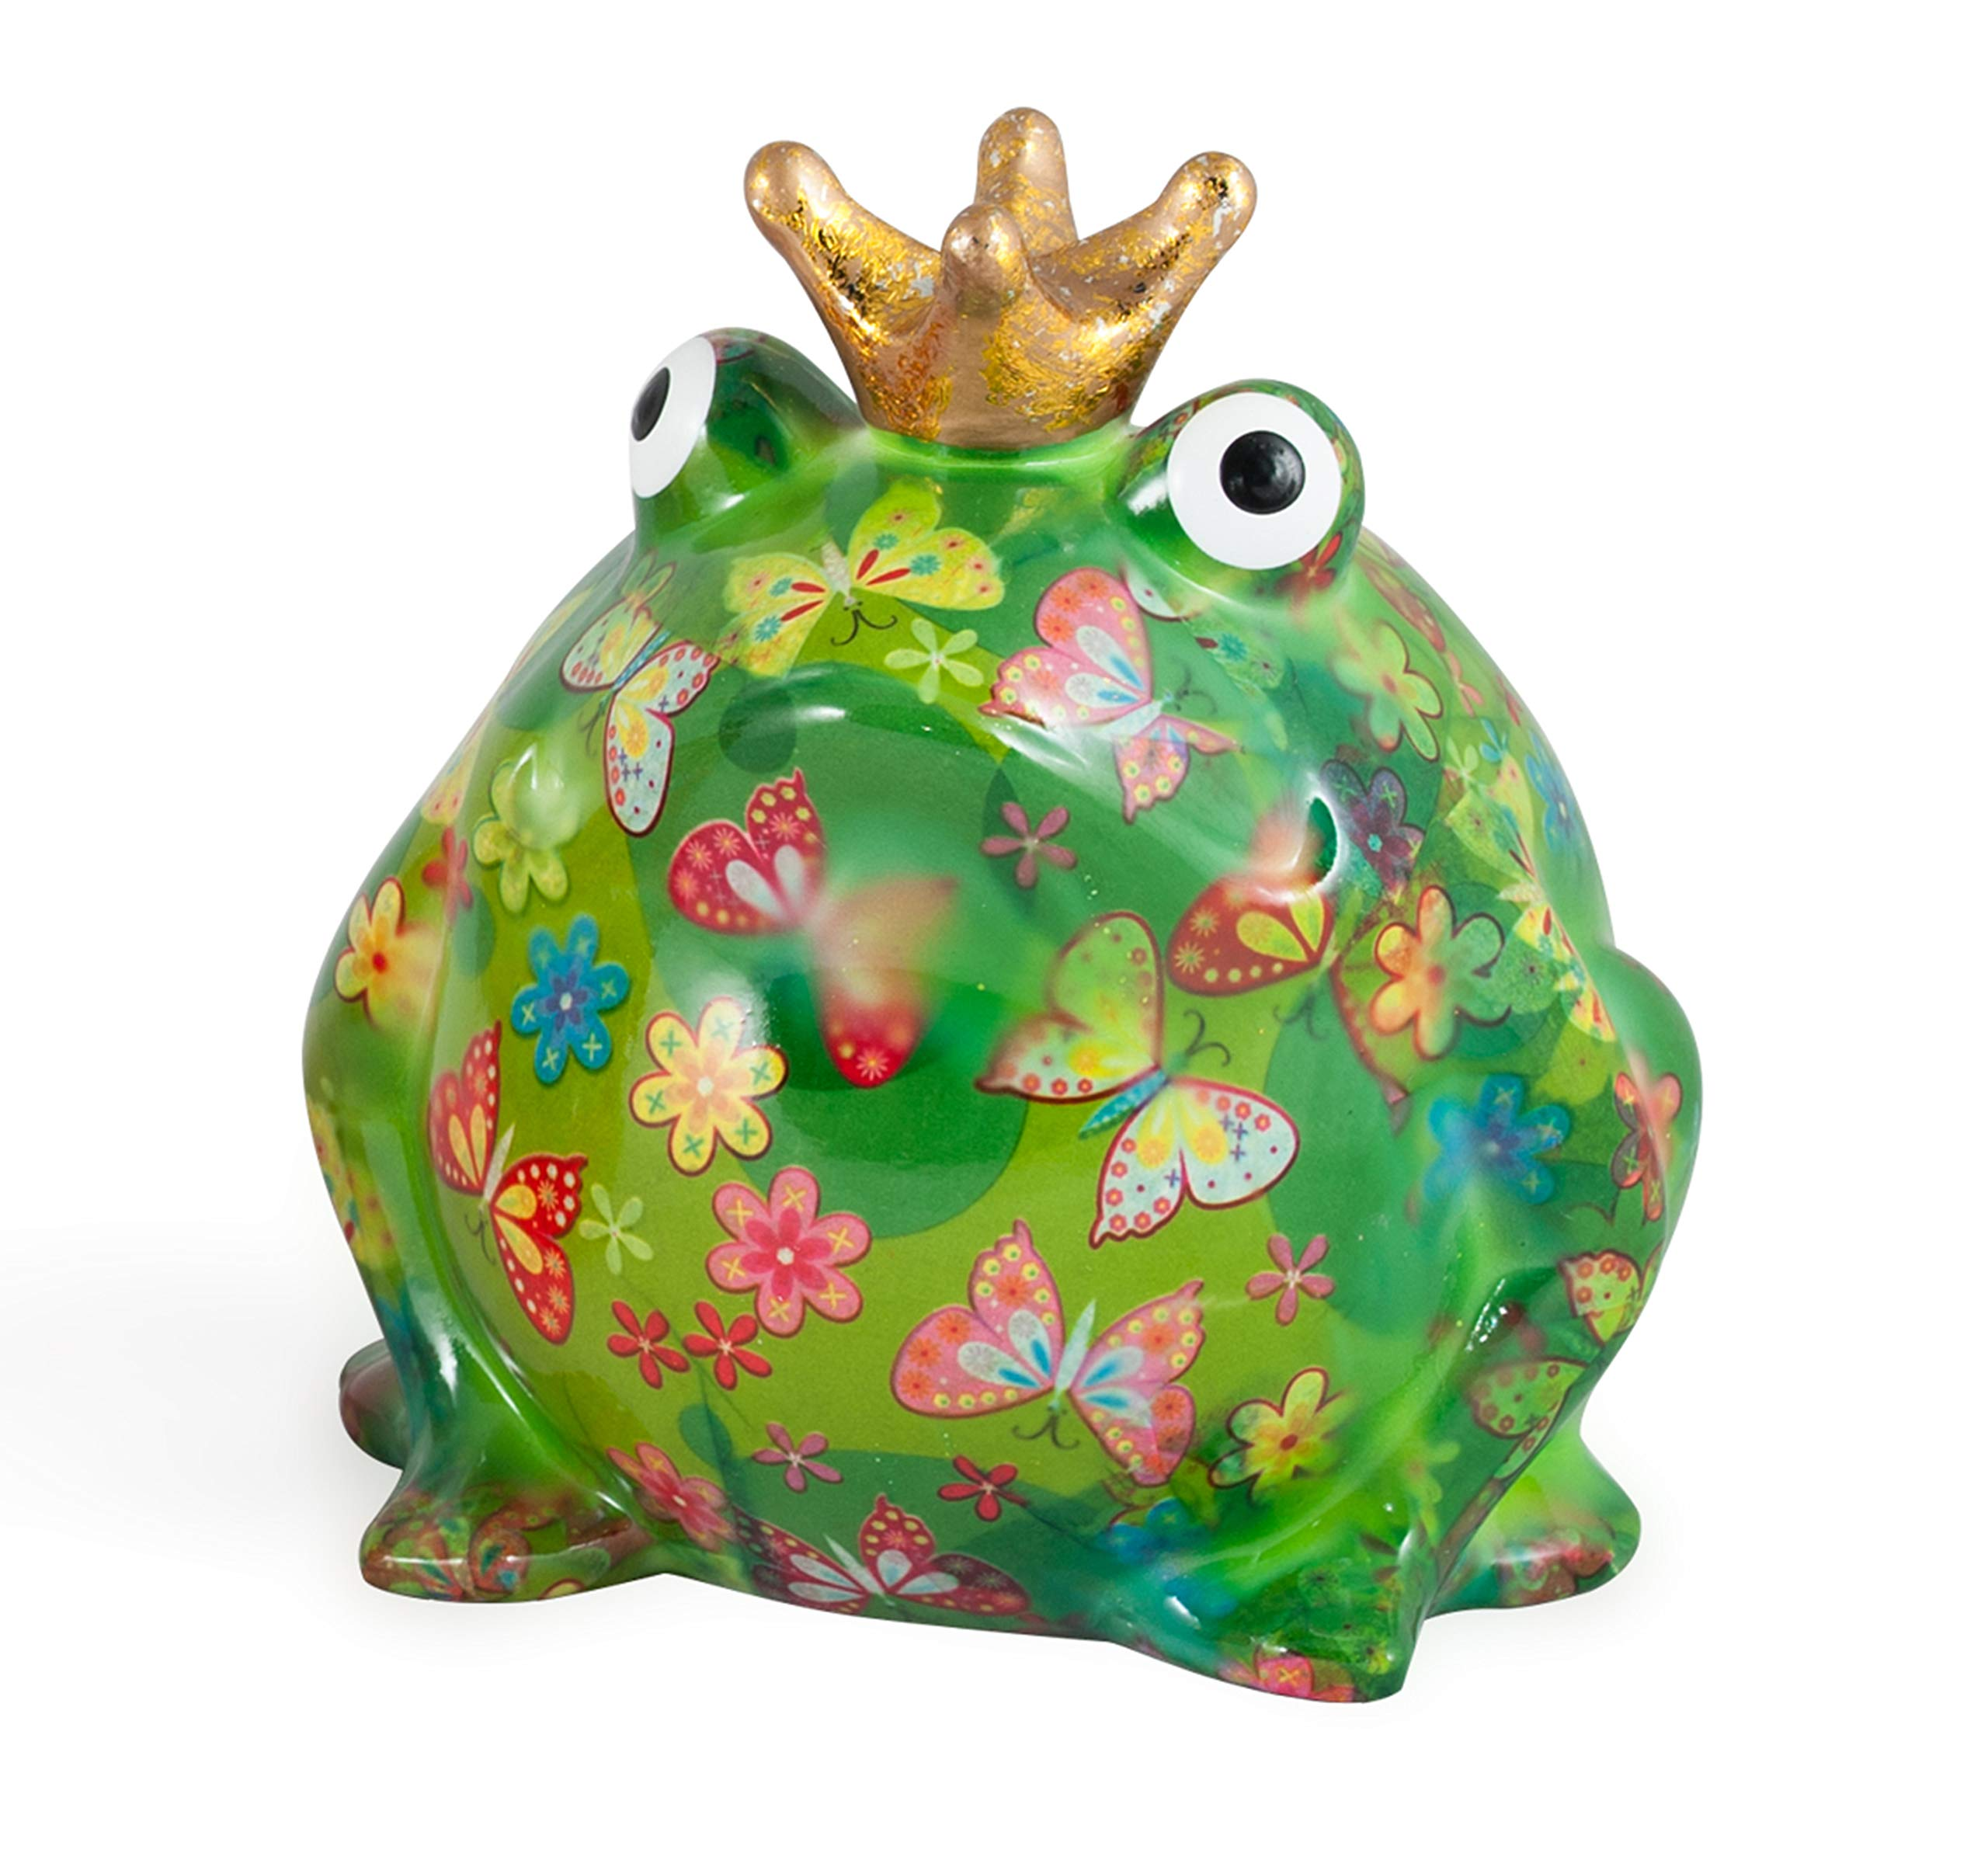 Pomme pidou Freddy Frog XXXL Ceramic Art Money Bank, Dk Green & Butterfly Floral